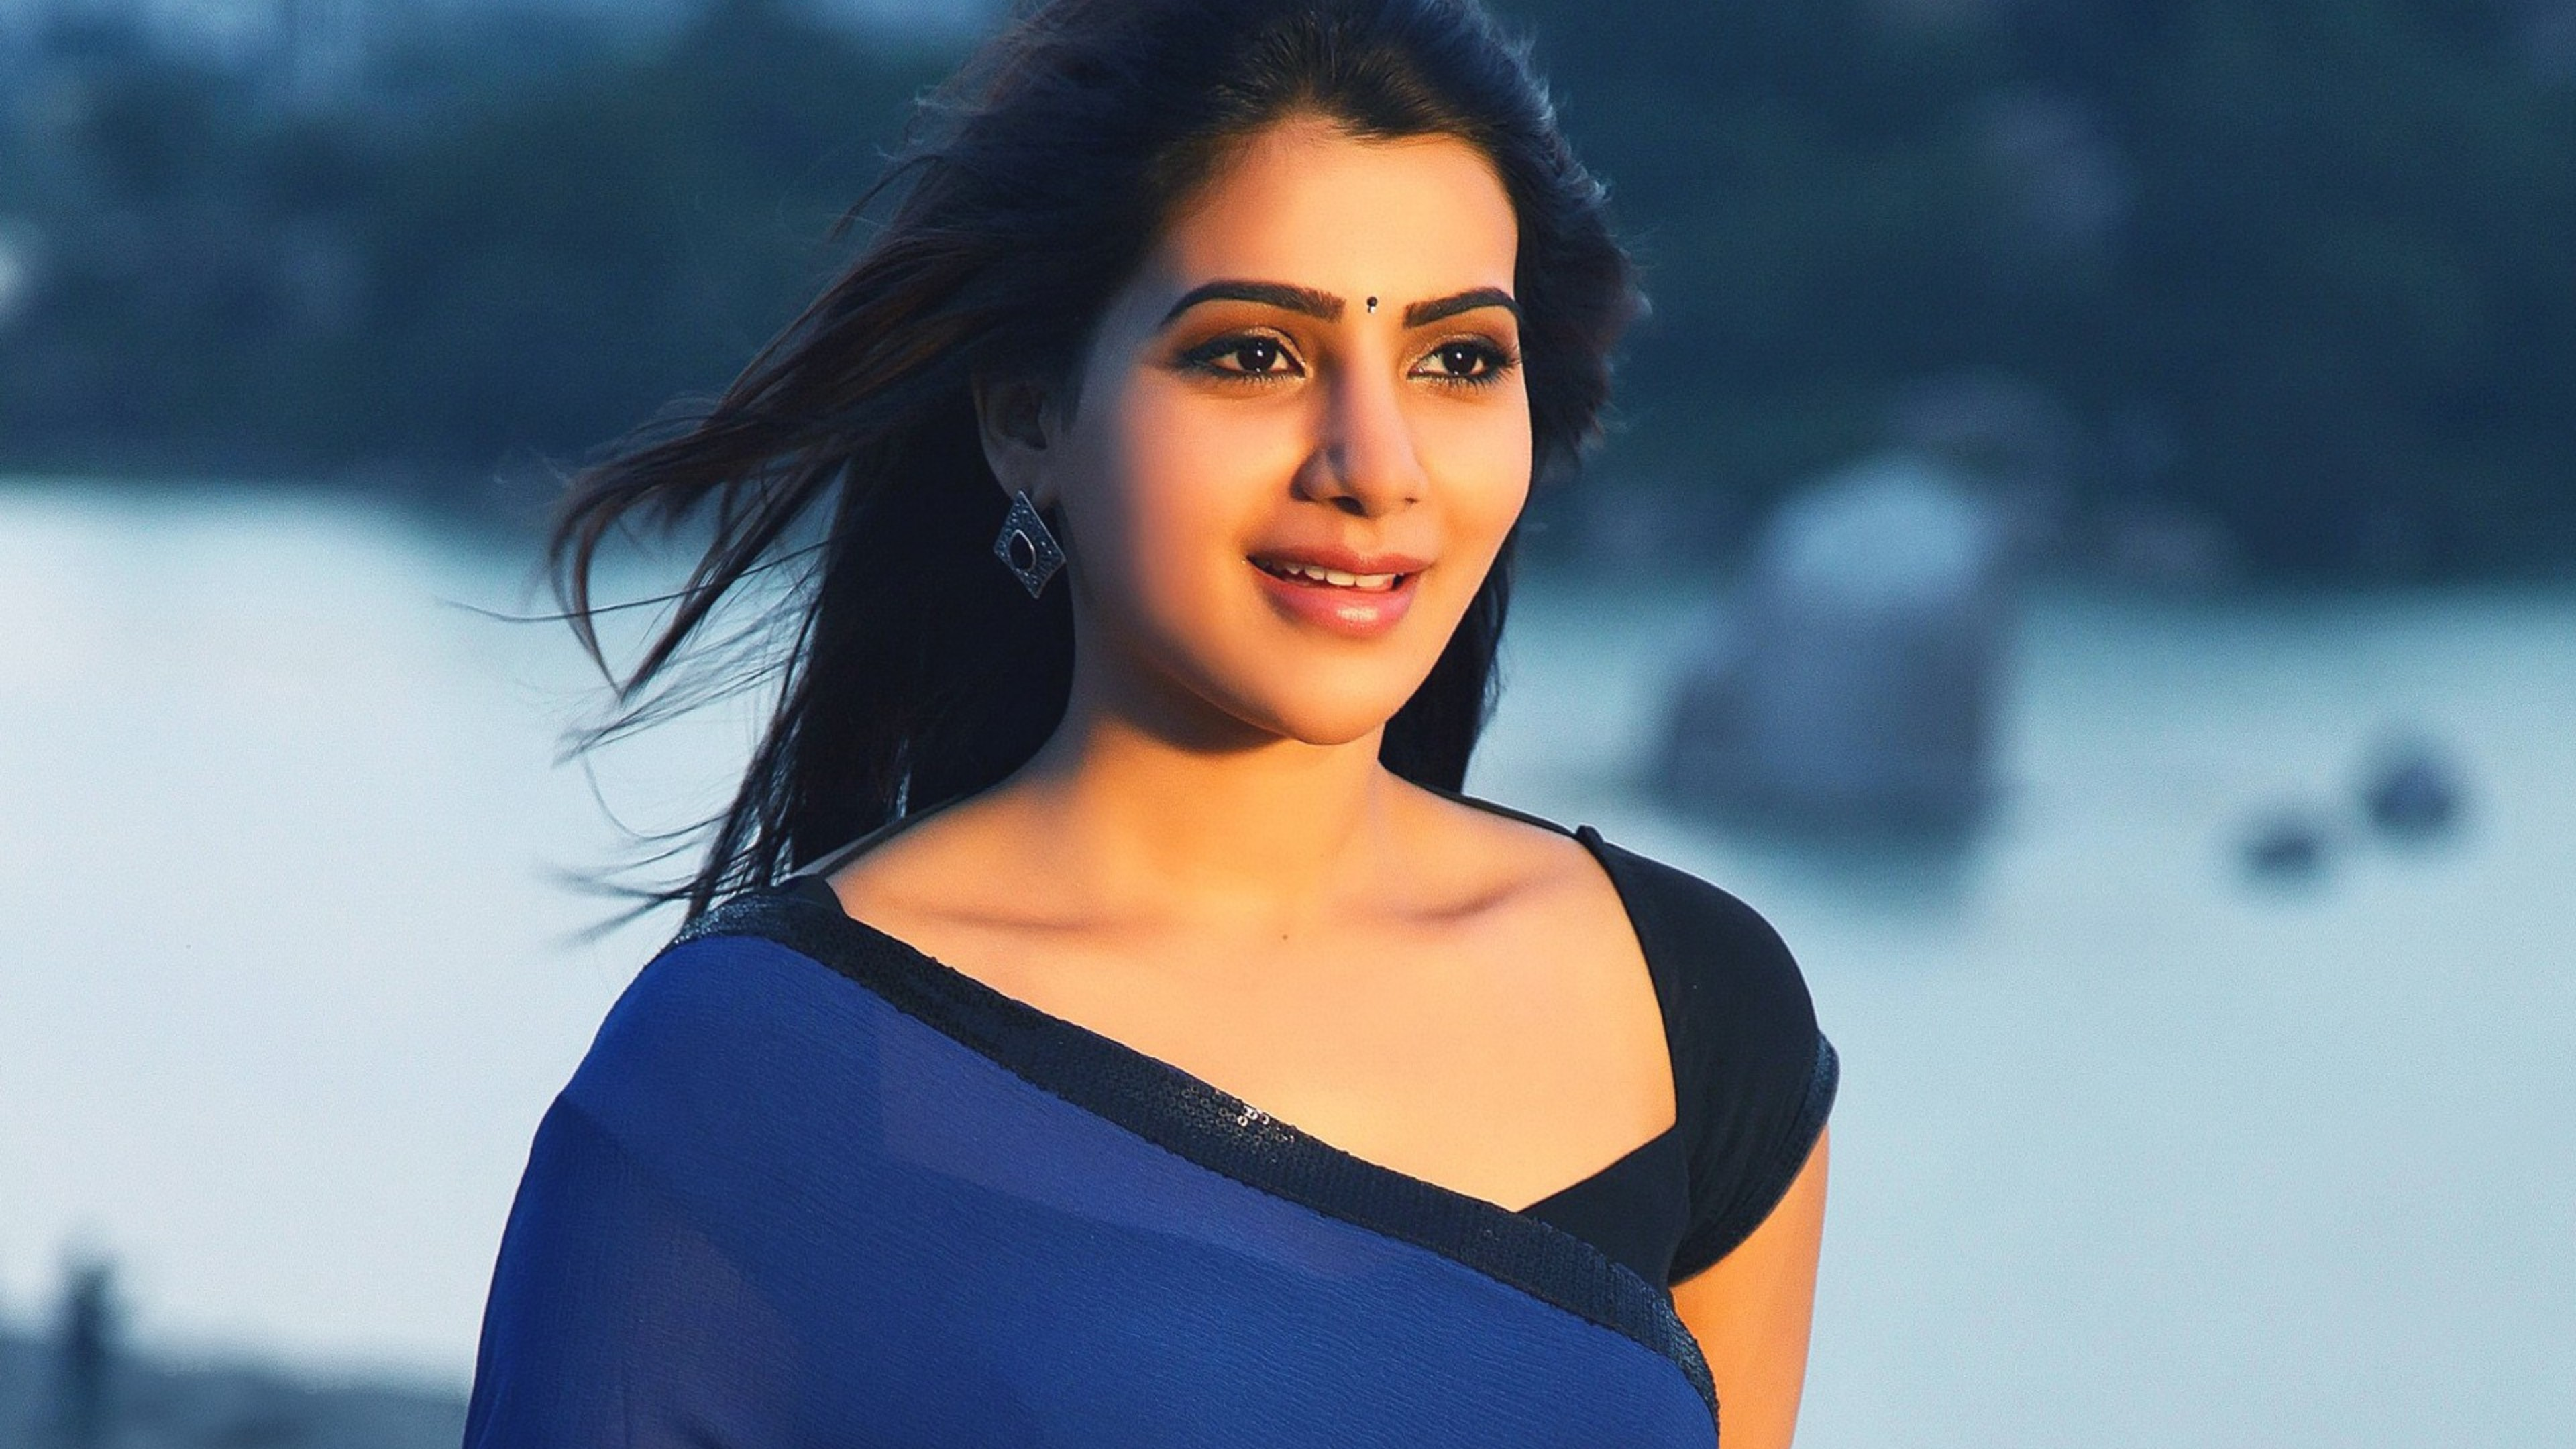 Samantha Hd Wallpapers: Samantha 2016, HD Indian Celebrities, 4k Wallpapers